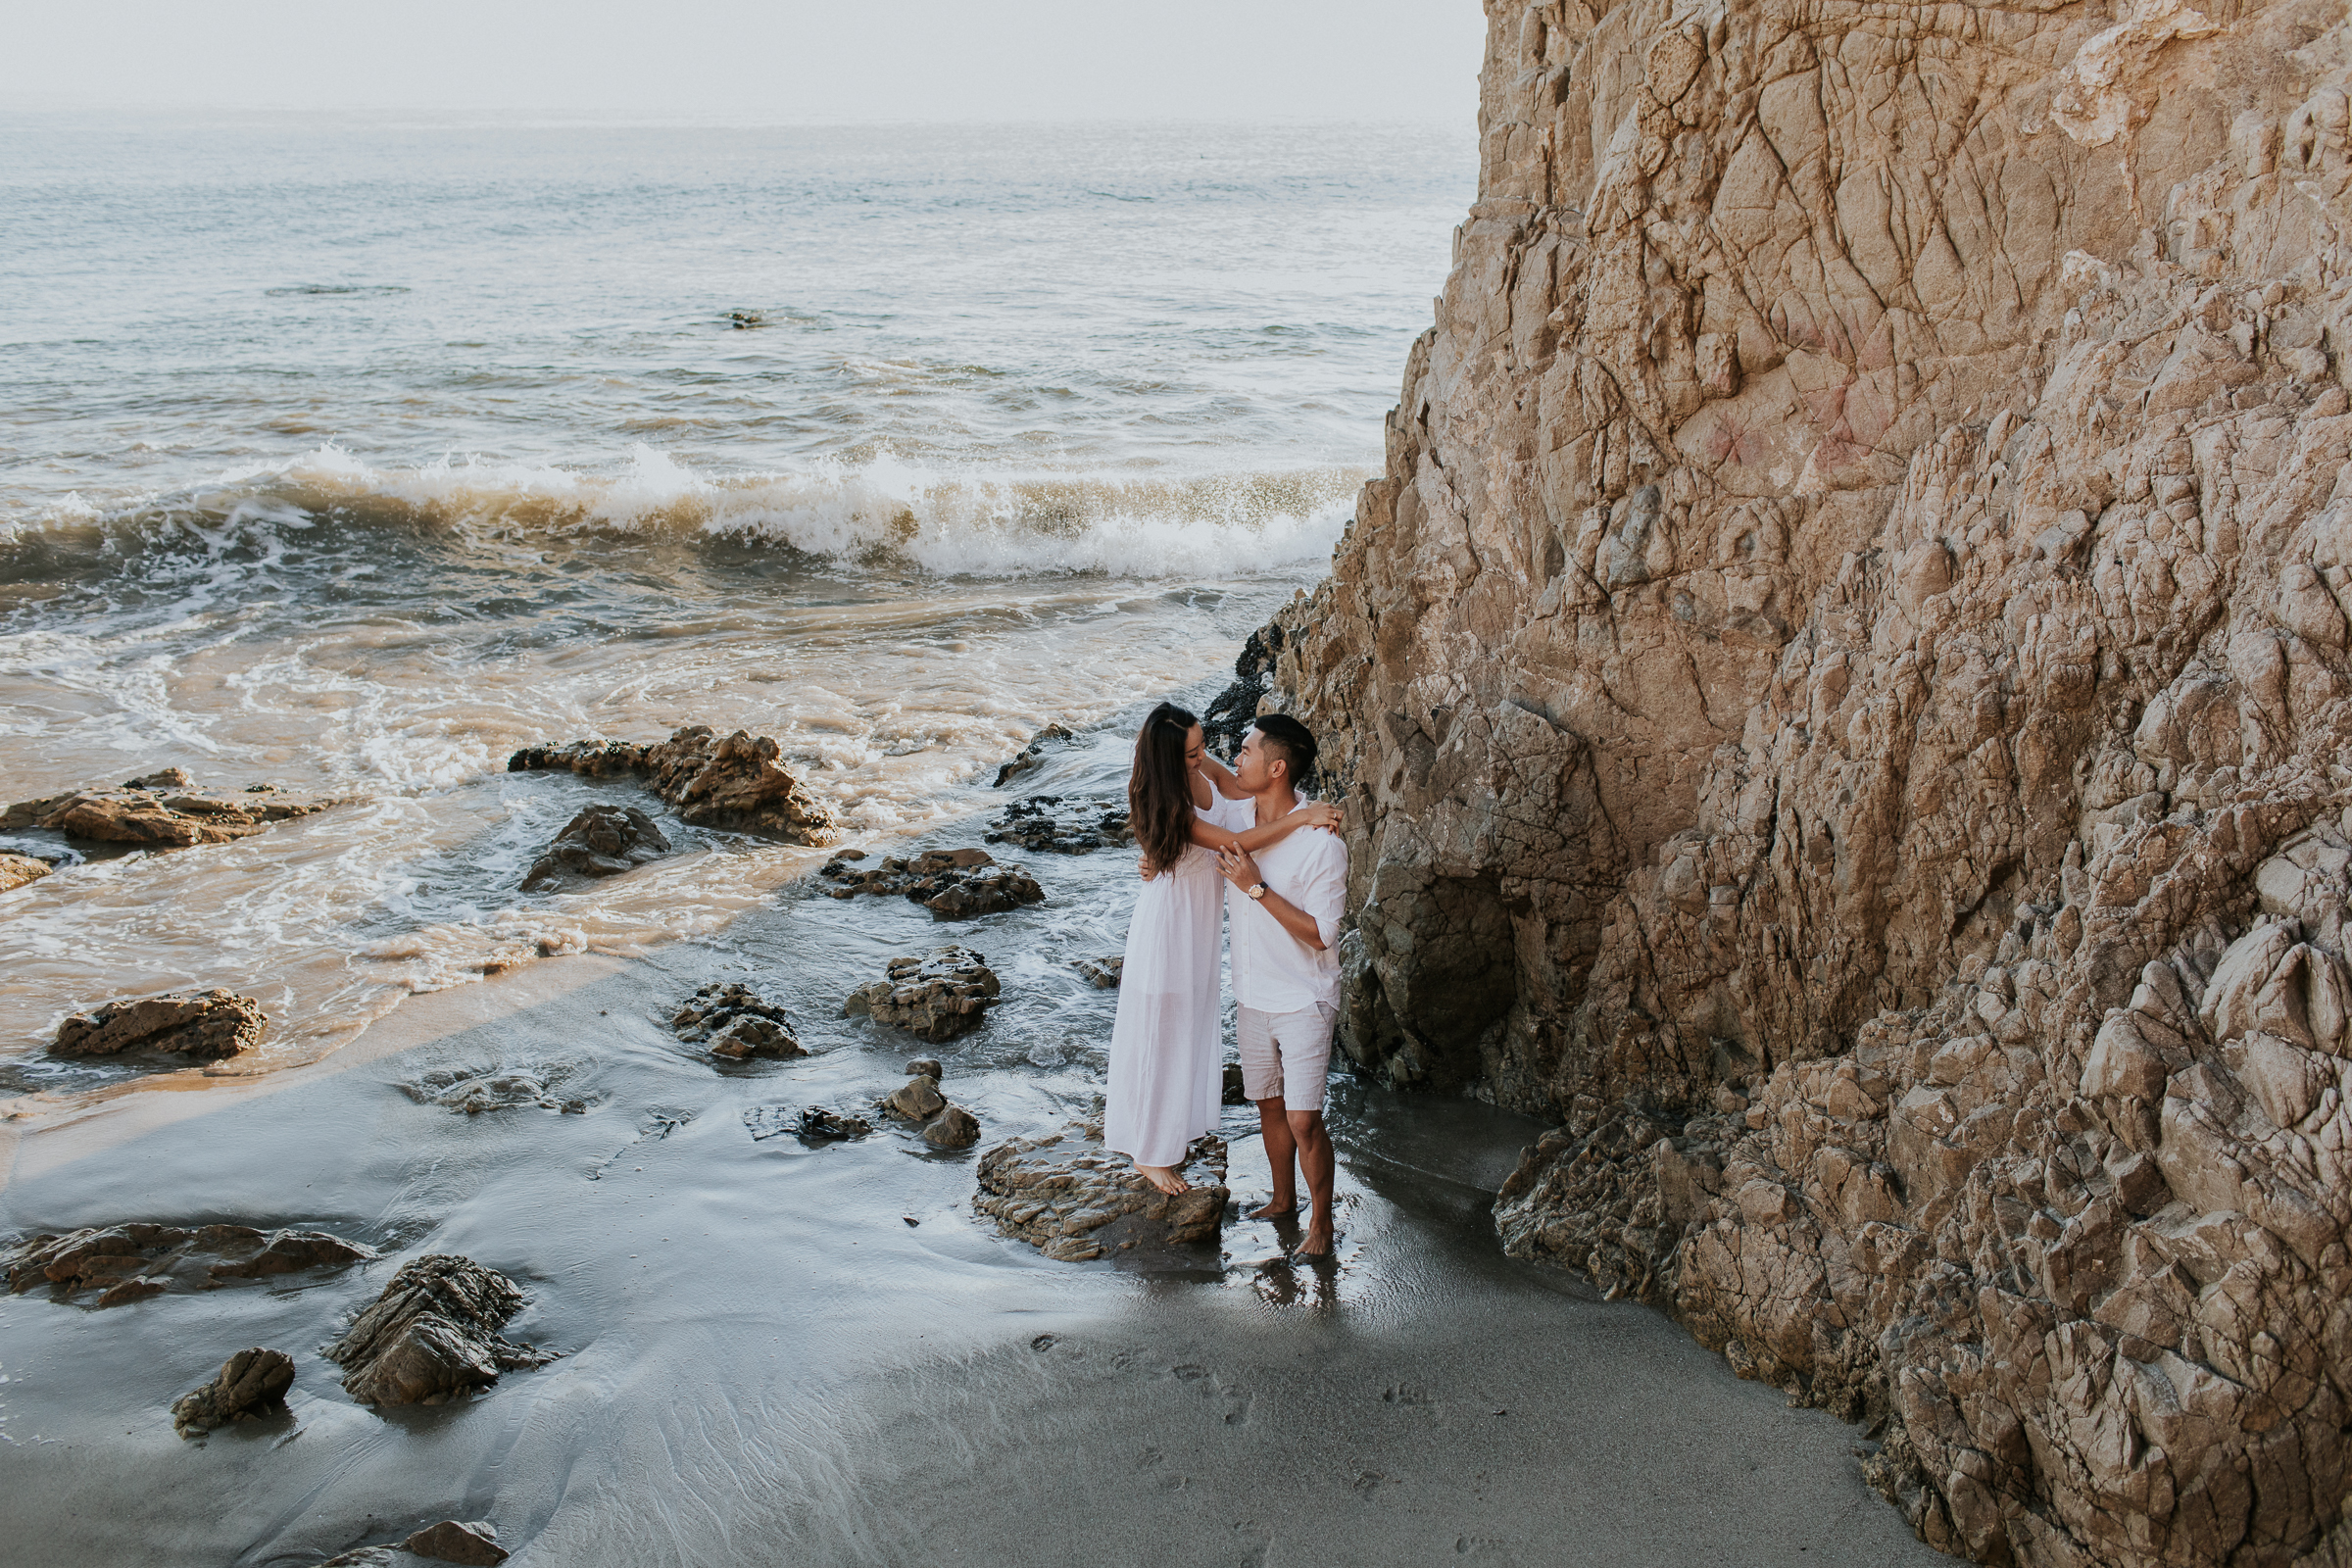 Malibu-El-Matador-State-Beach-Sunset-Engagement-Photos-Los-Angeles-Documentary-Wedding-Photographer-10.jpg